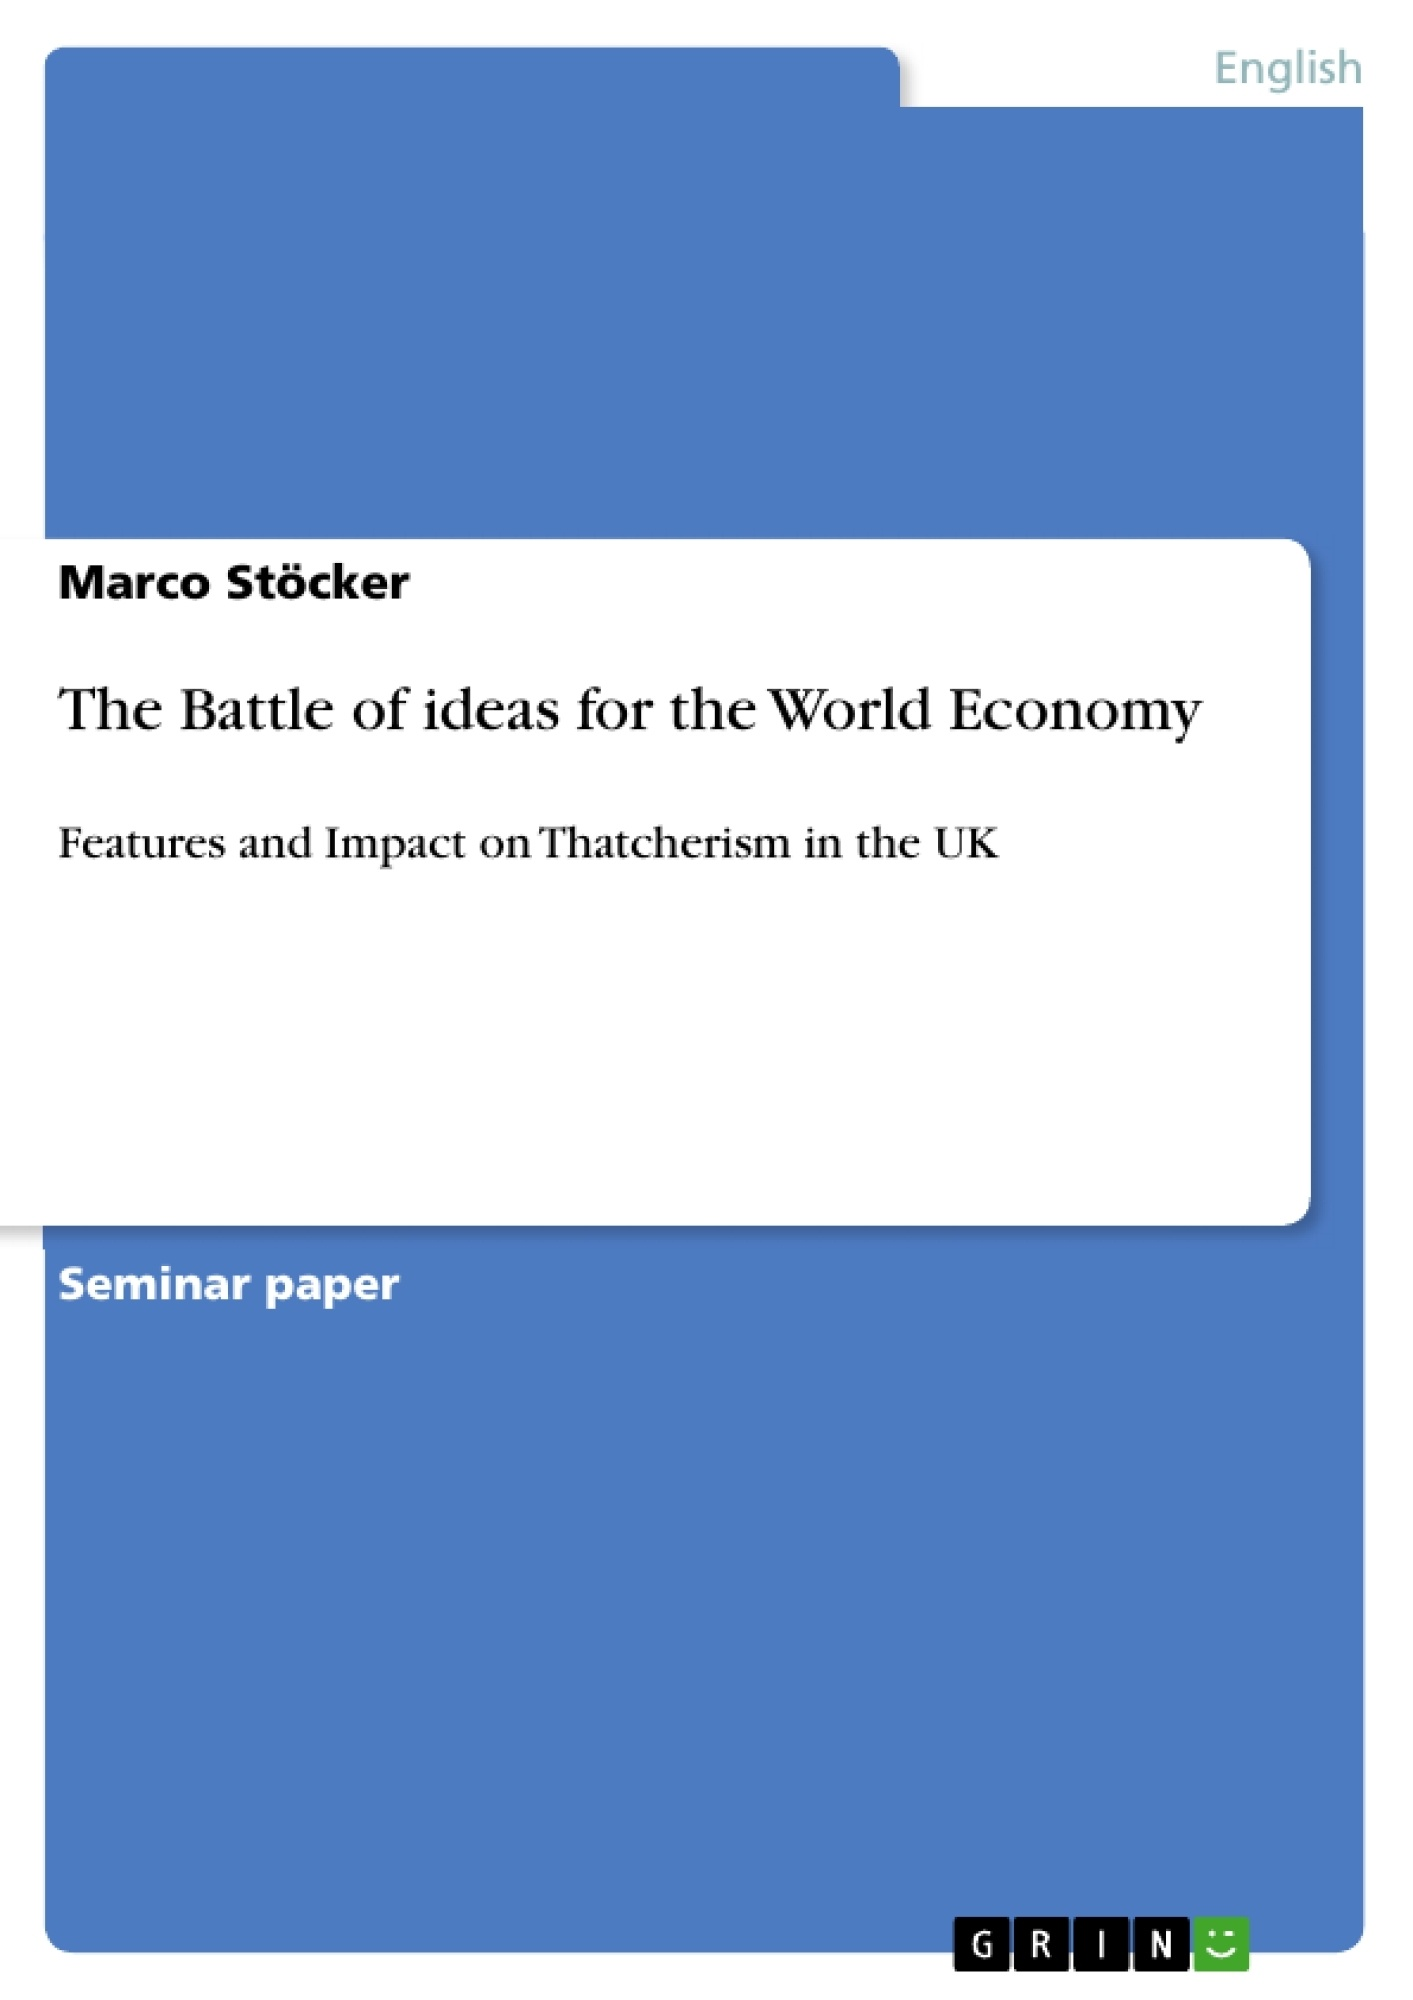 Title: The Battle of ideas for the World Economy